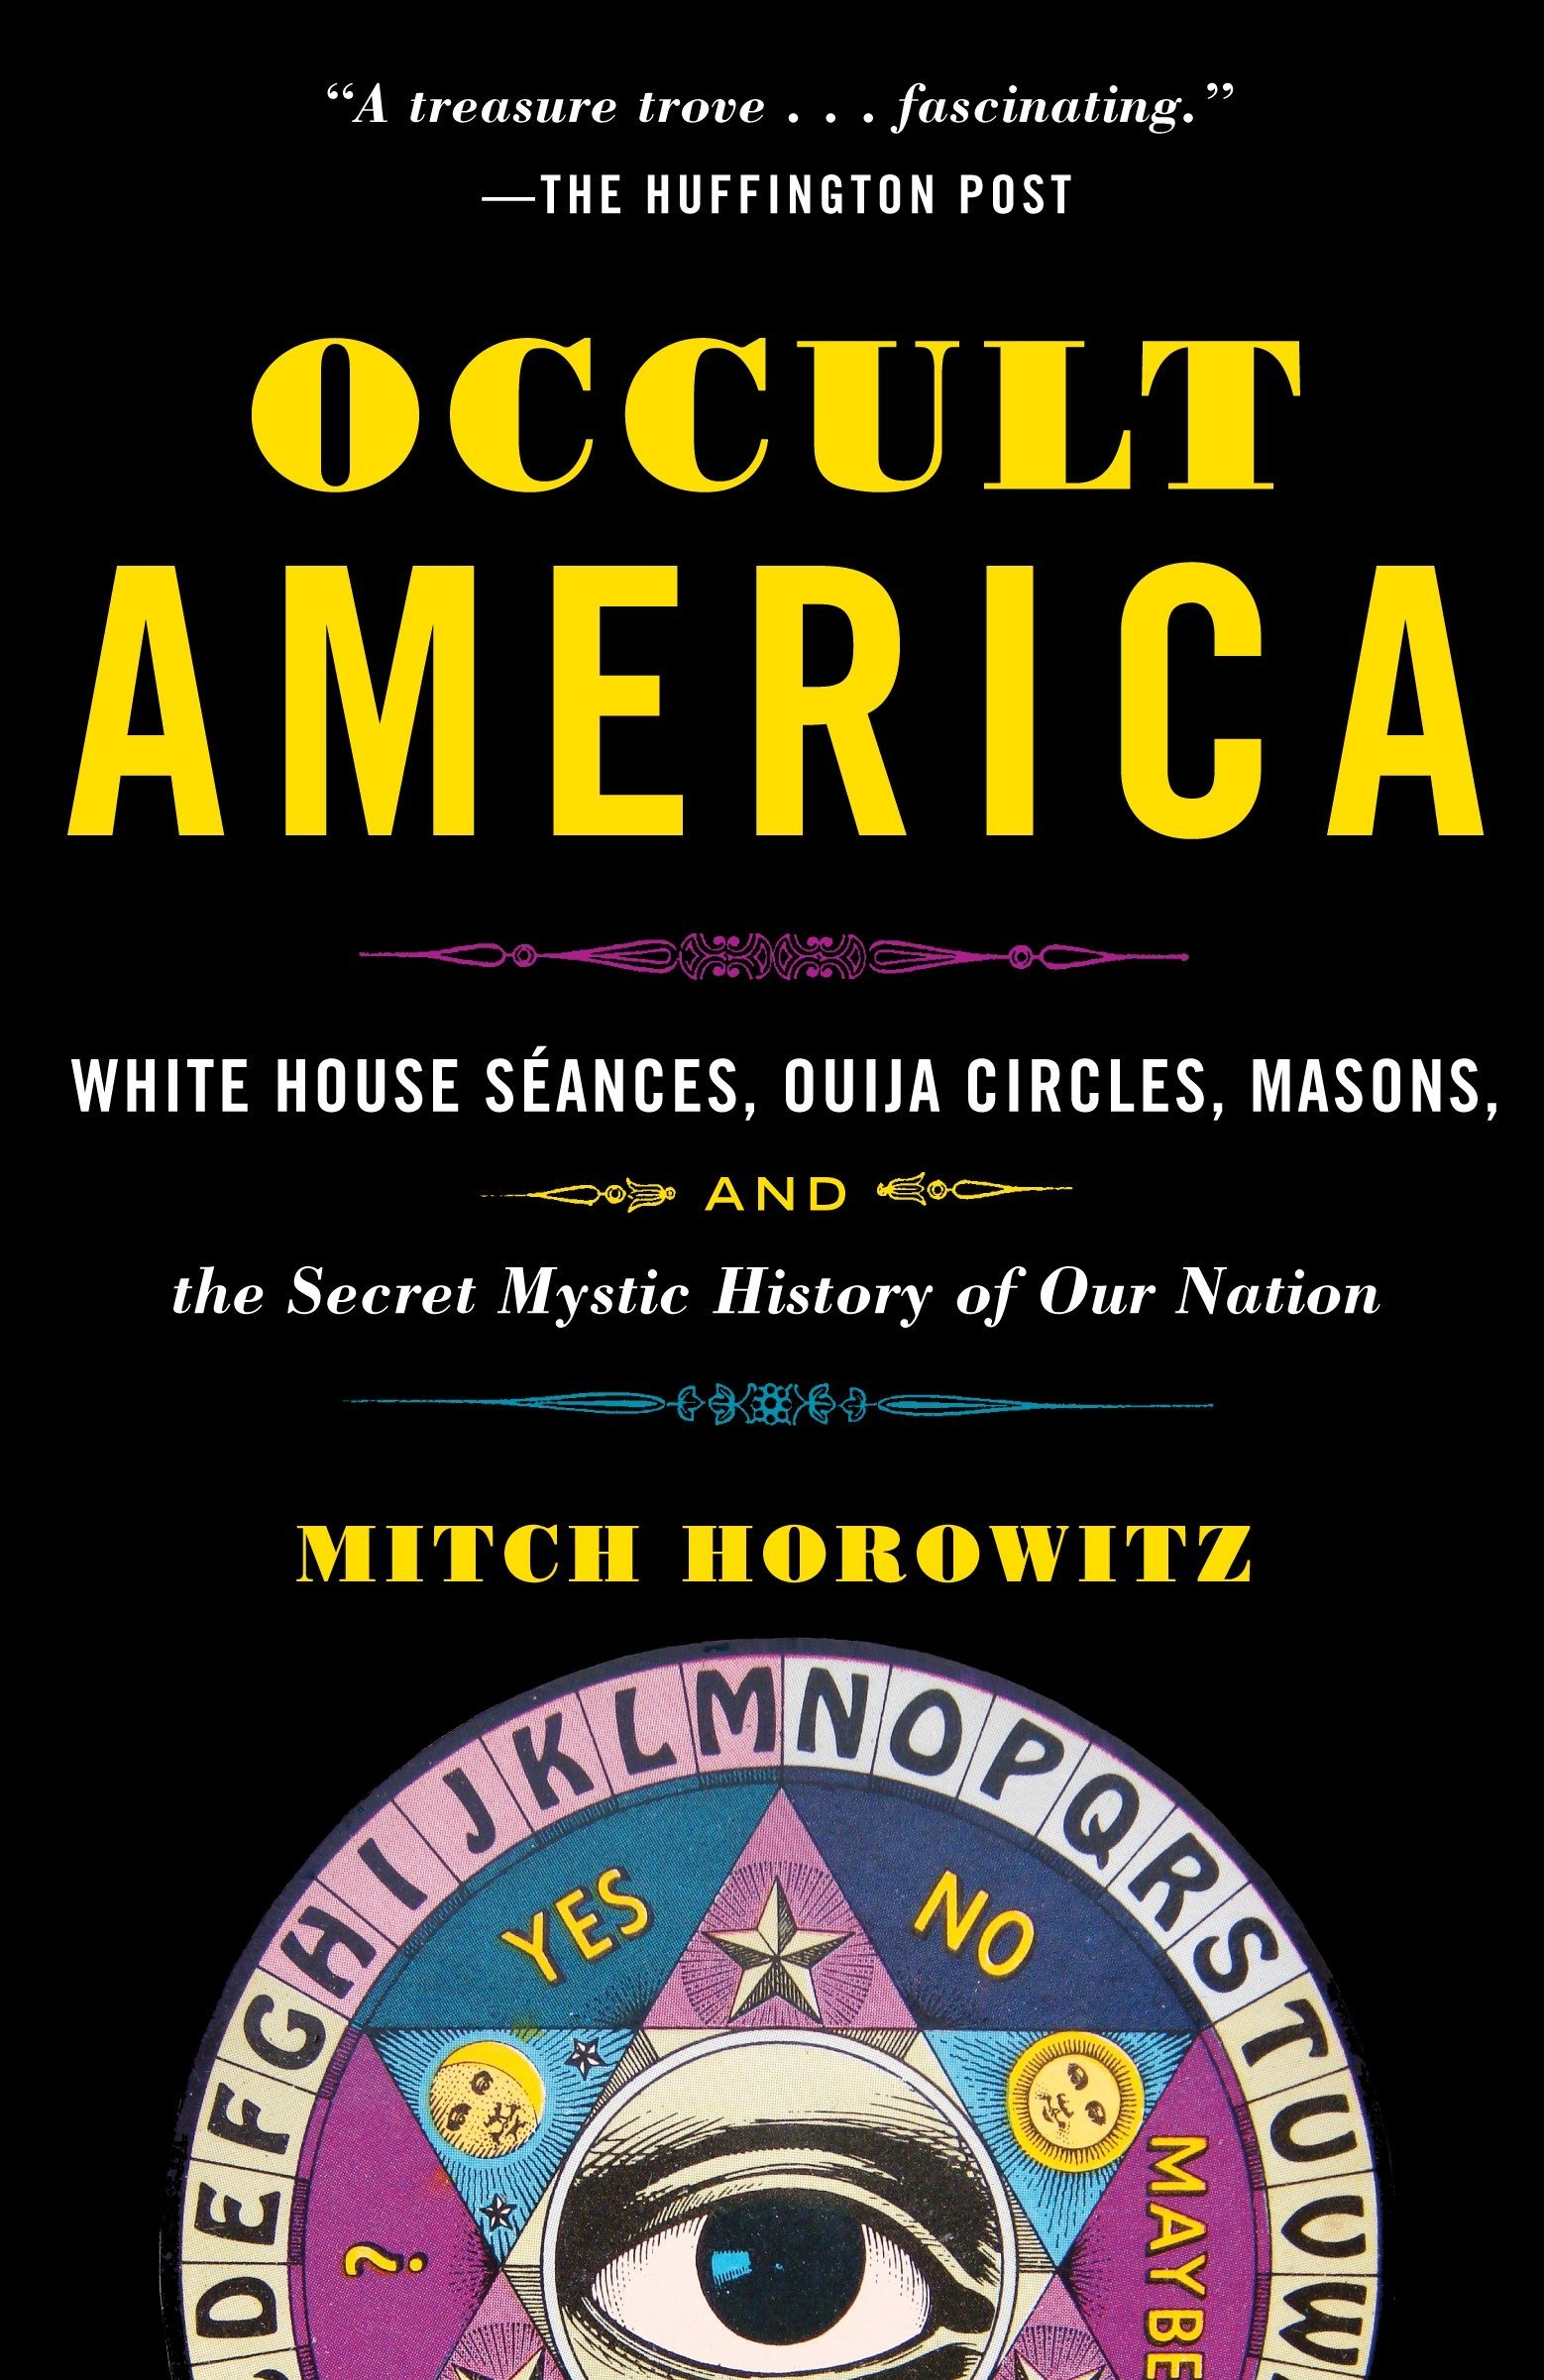 Occult America: White House Seances, Ouija Circles, Masons, and the Secret Mystic History of Our Nation PDF